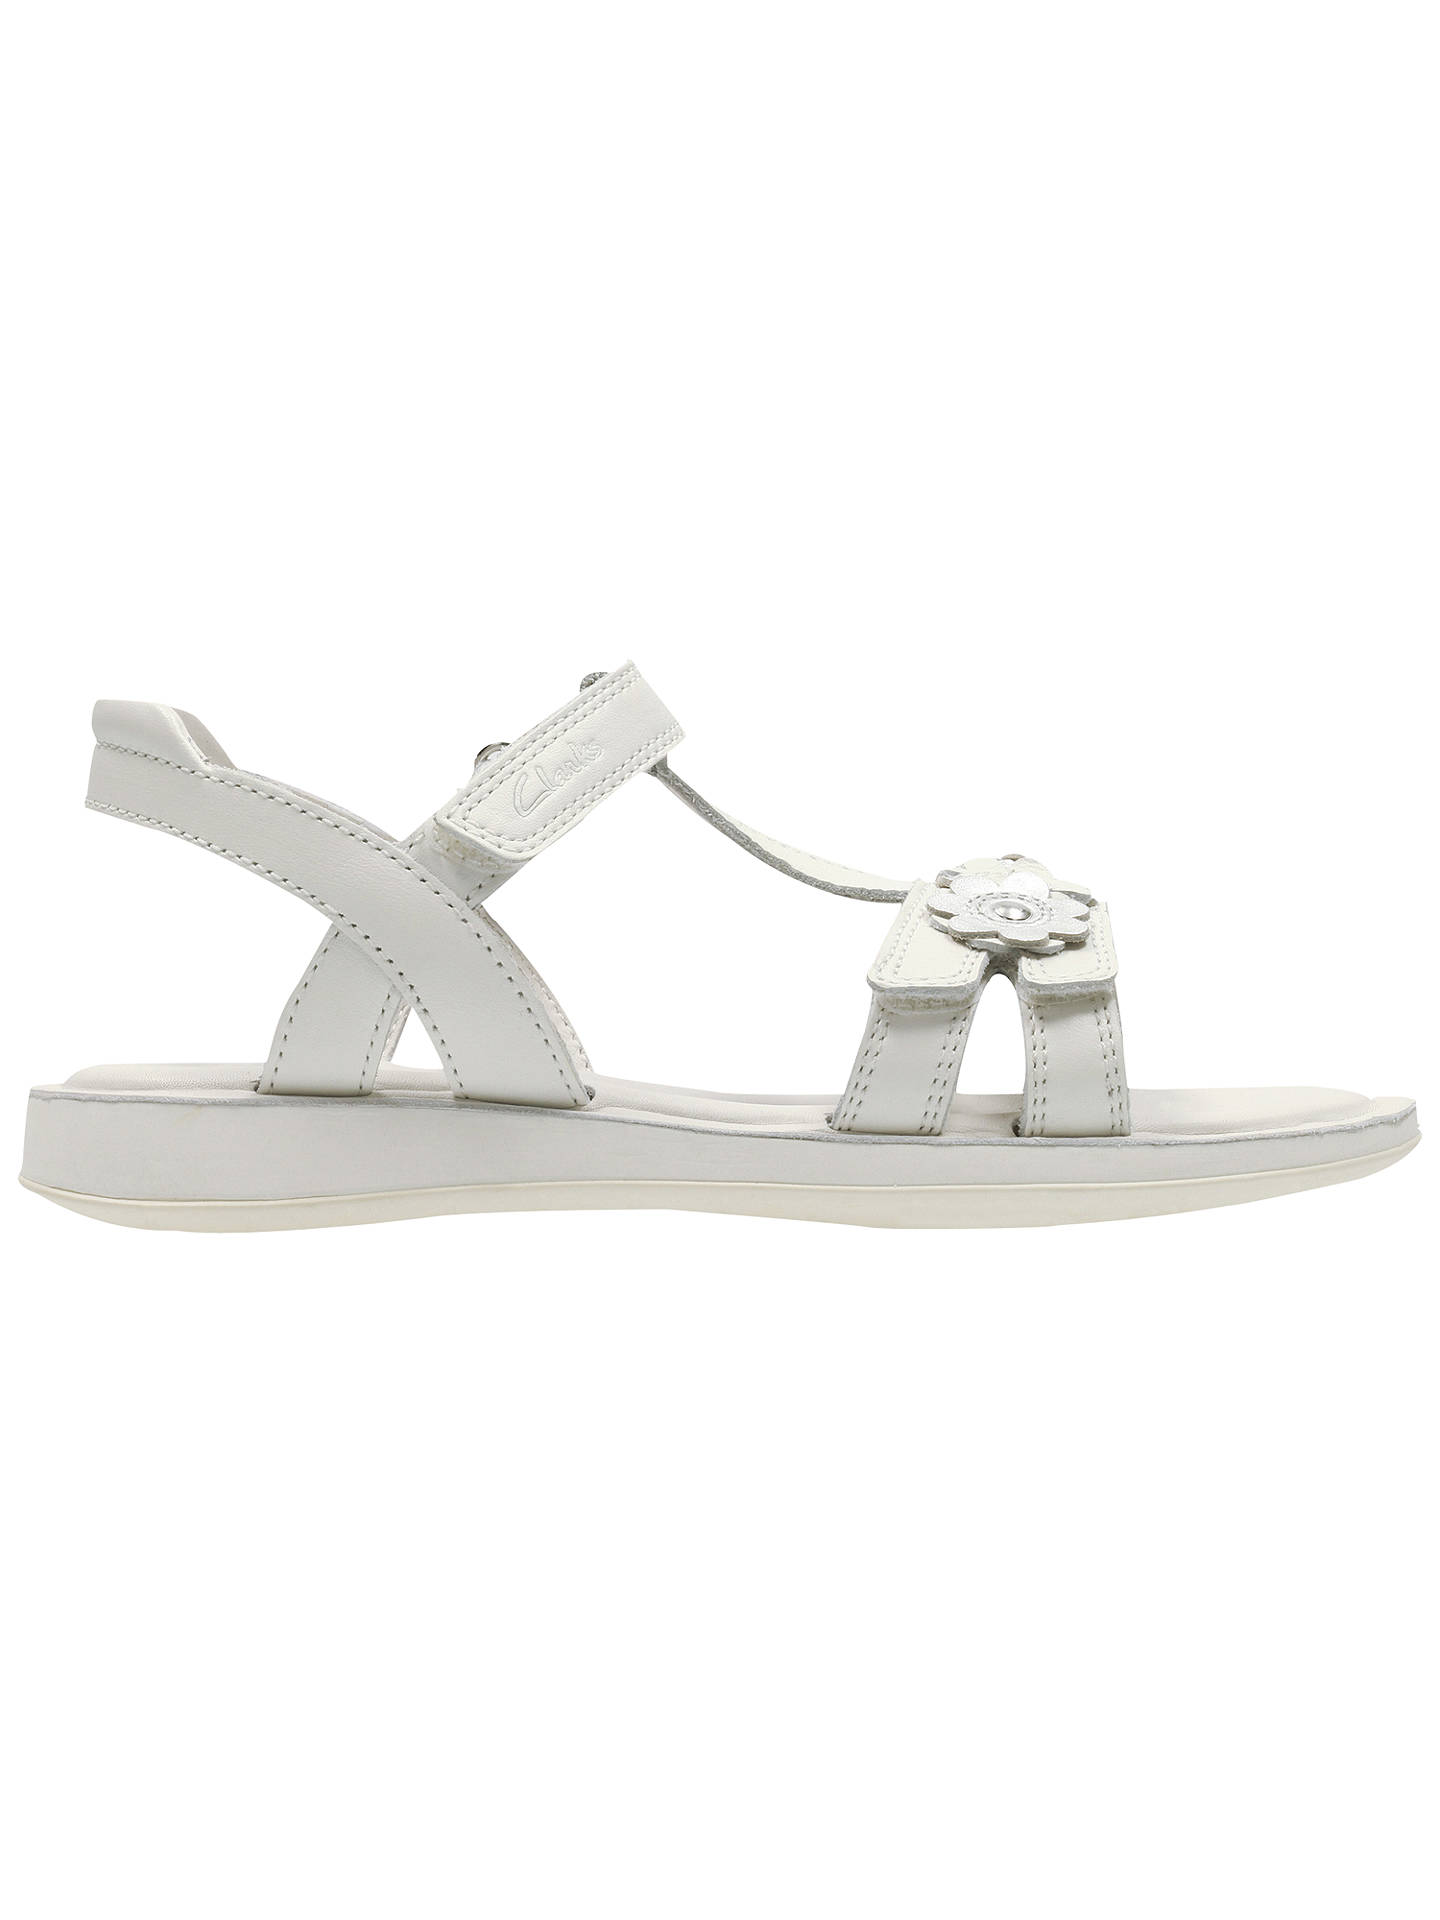 3ab778a3c7f Buy Clarks Children s Sea Sally Rip-Tape Leather Sandals